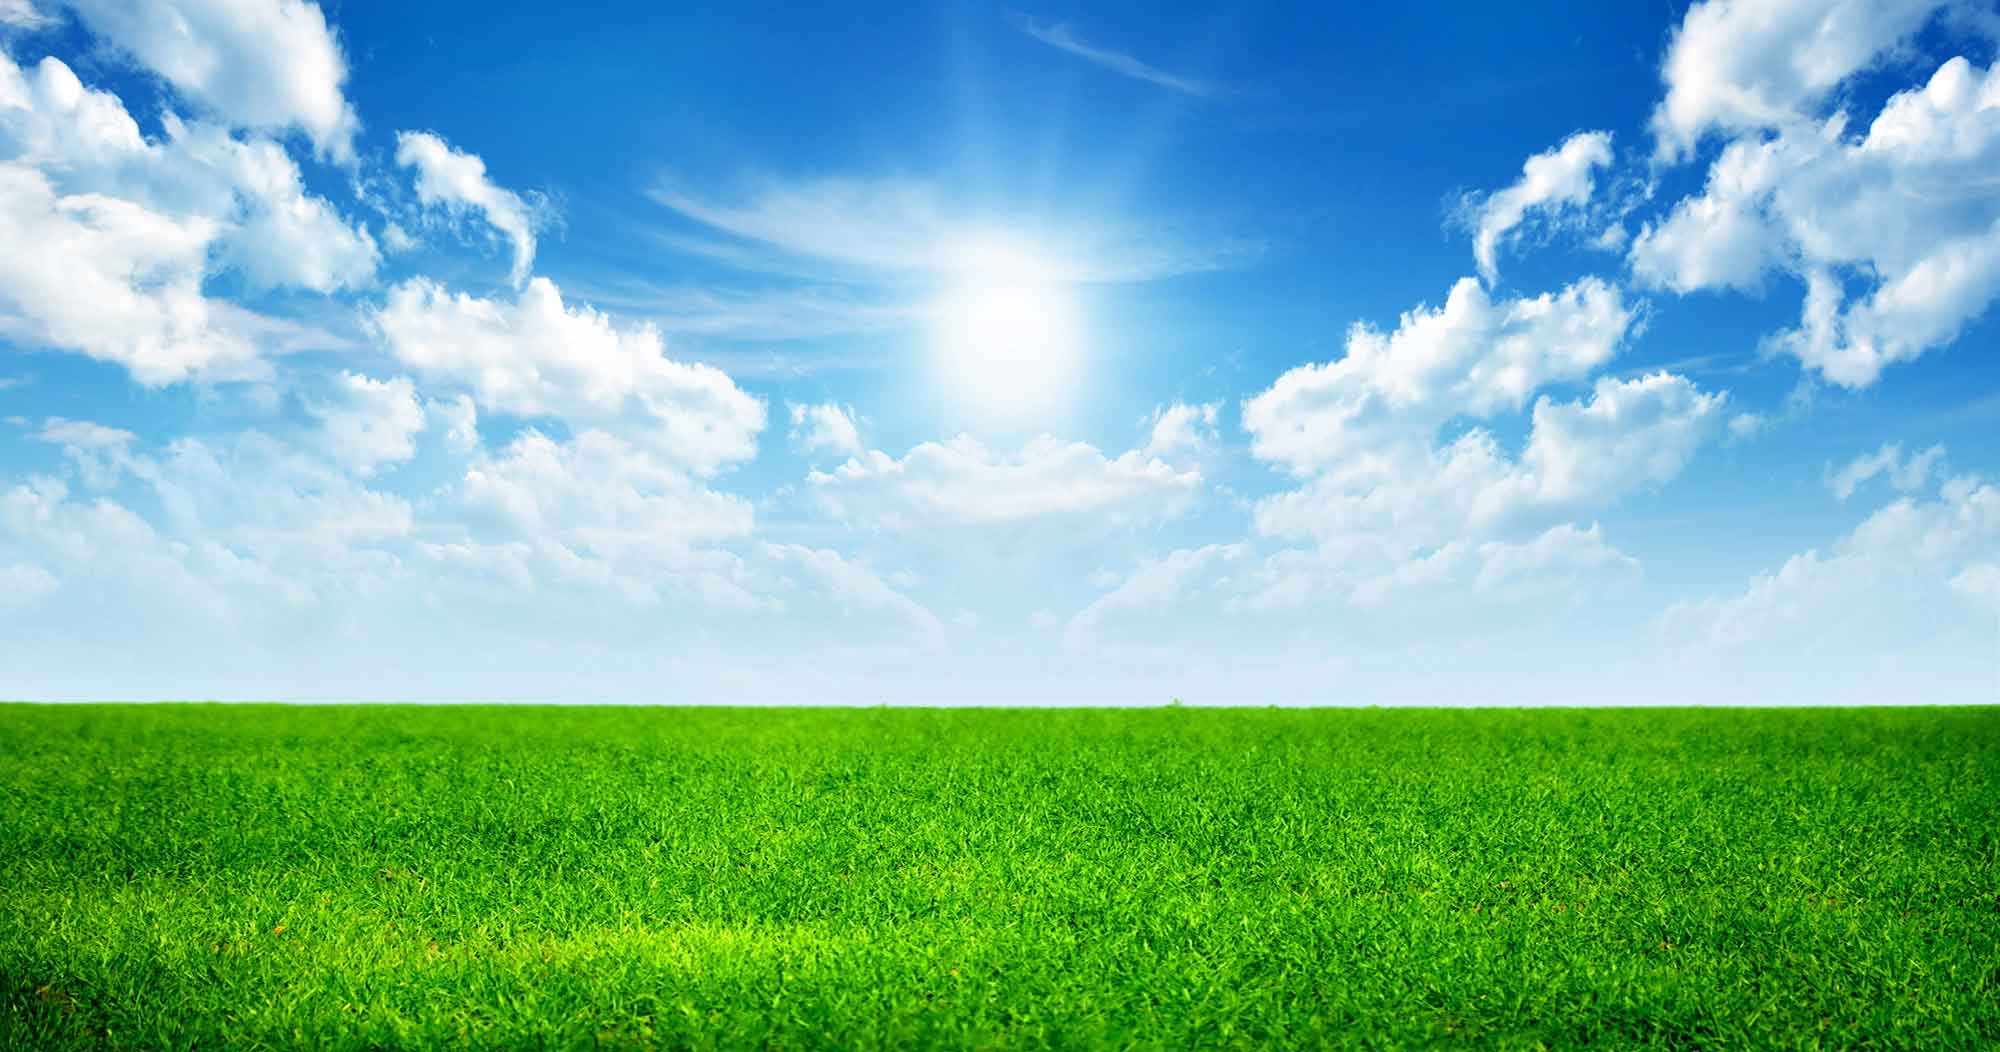 Wallpapers For > Green Grass And Sky Backgrounds